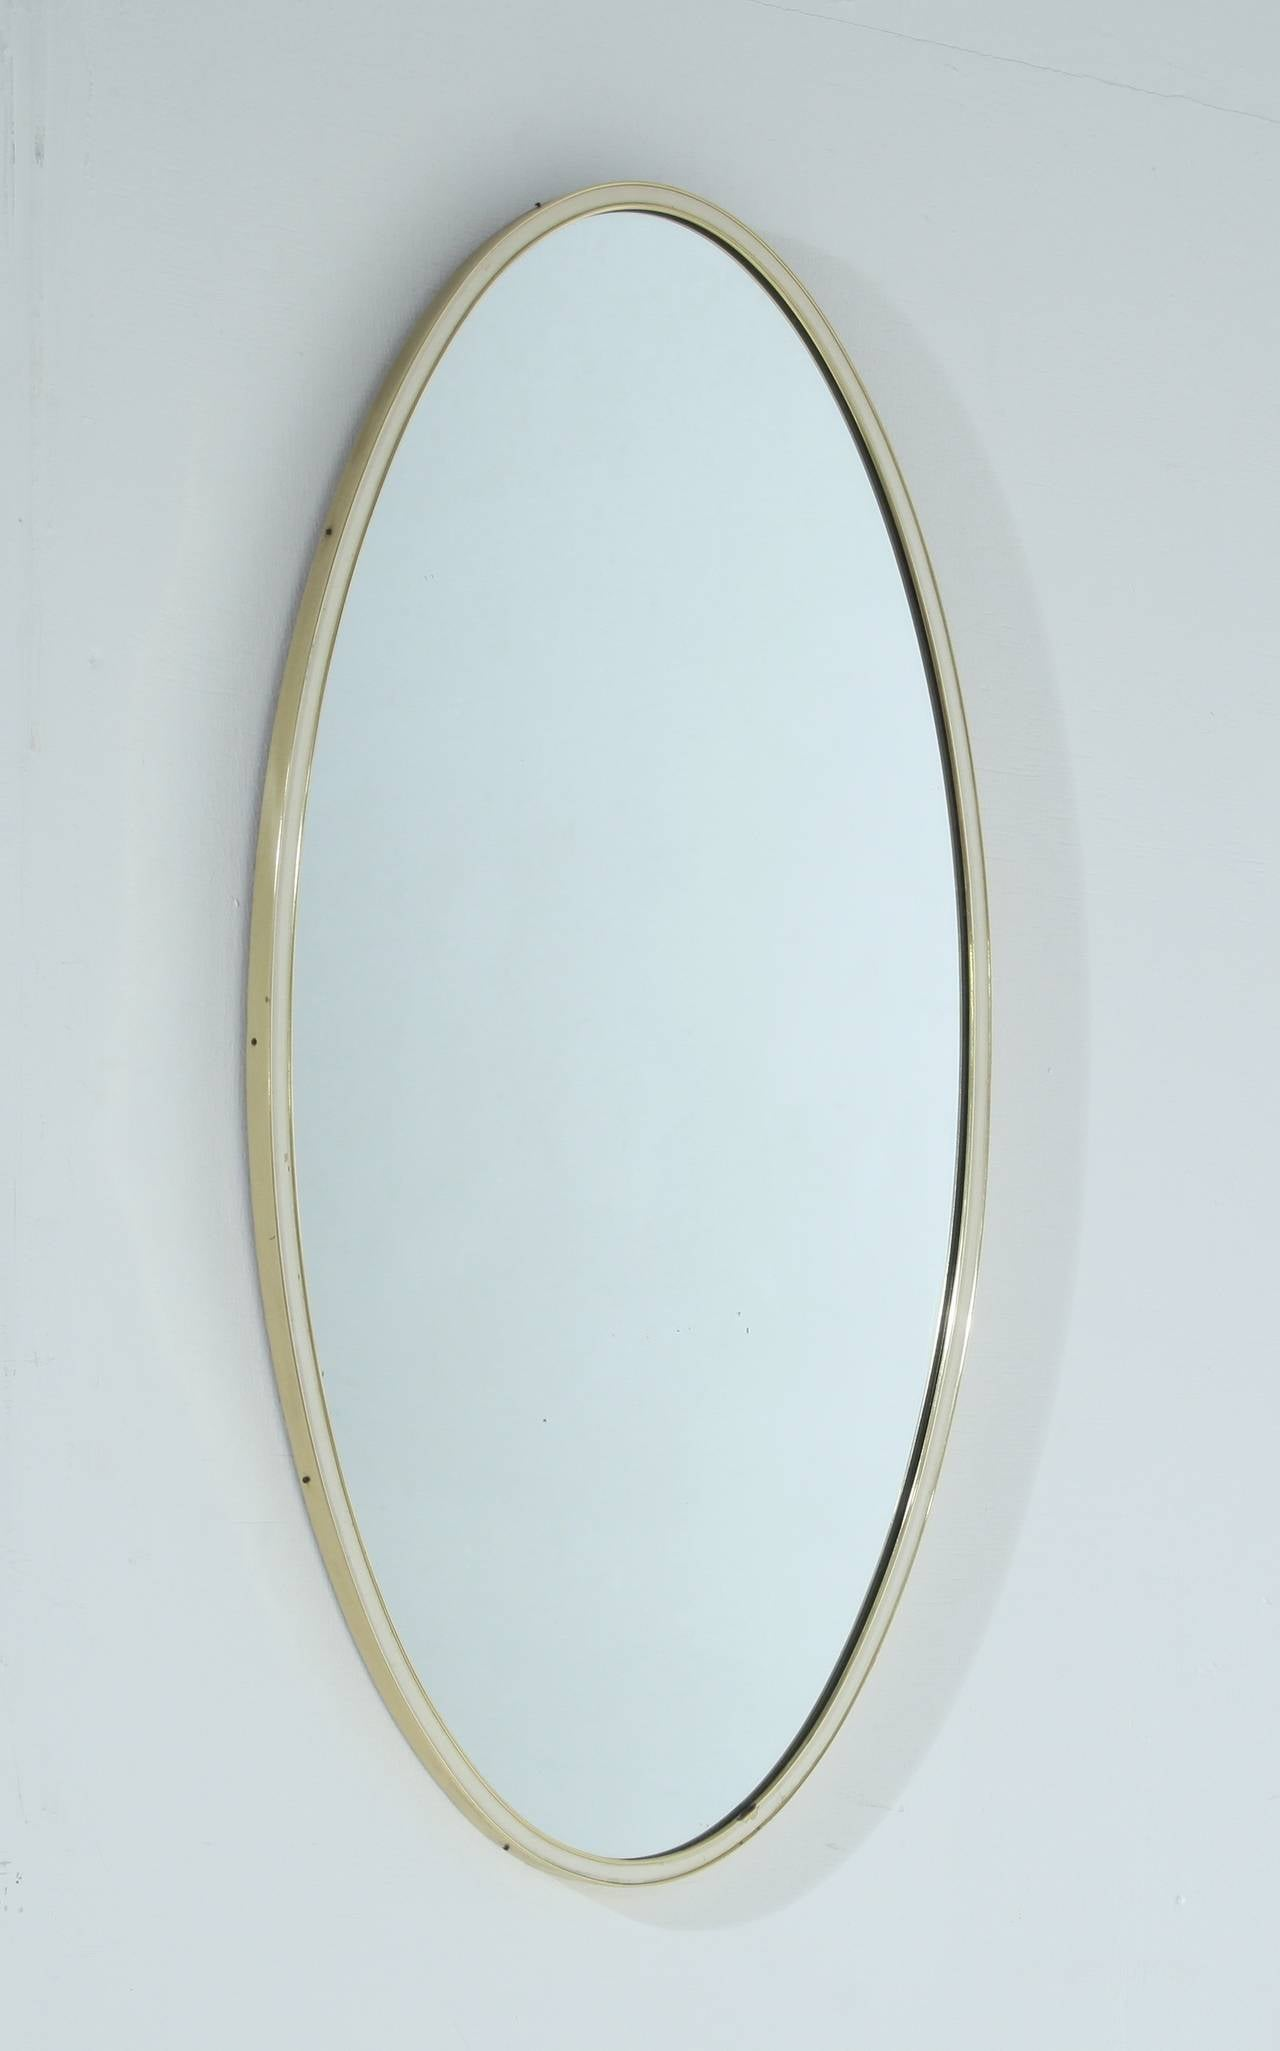 Oval Wall Mirror oval wall mirror with brass frame, germany, 1960s for sale at 1stdibs